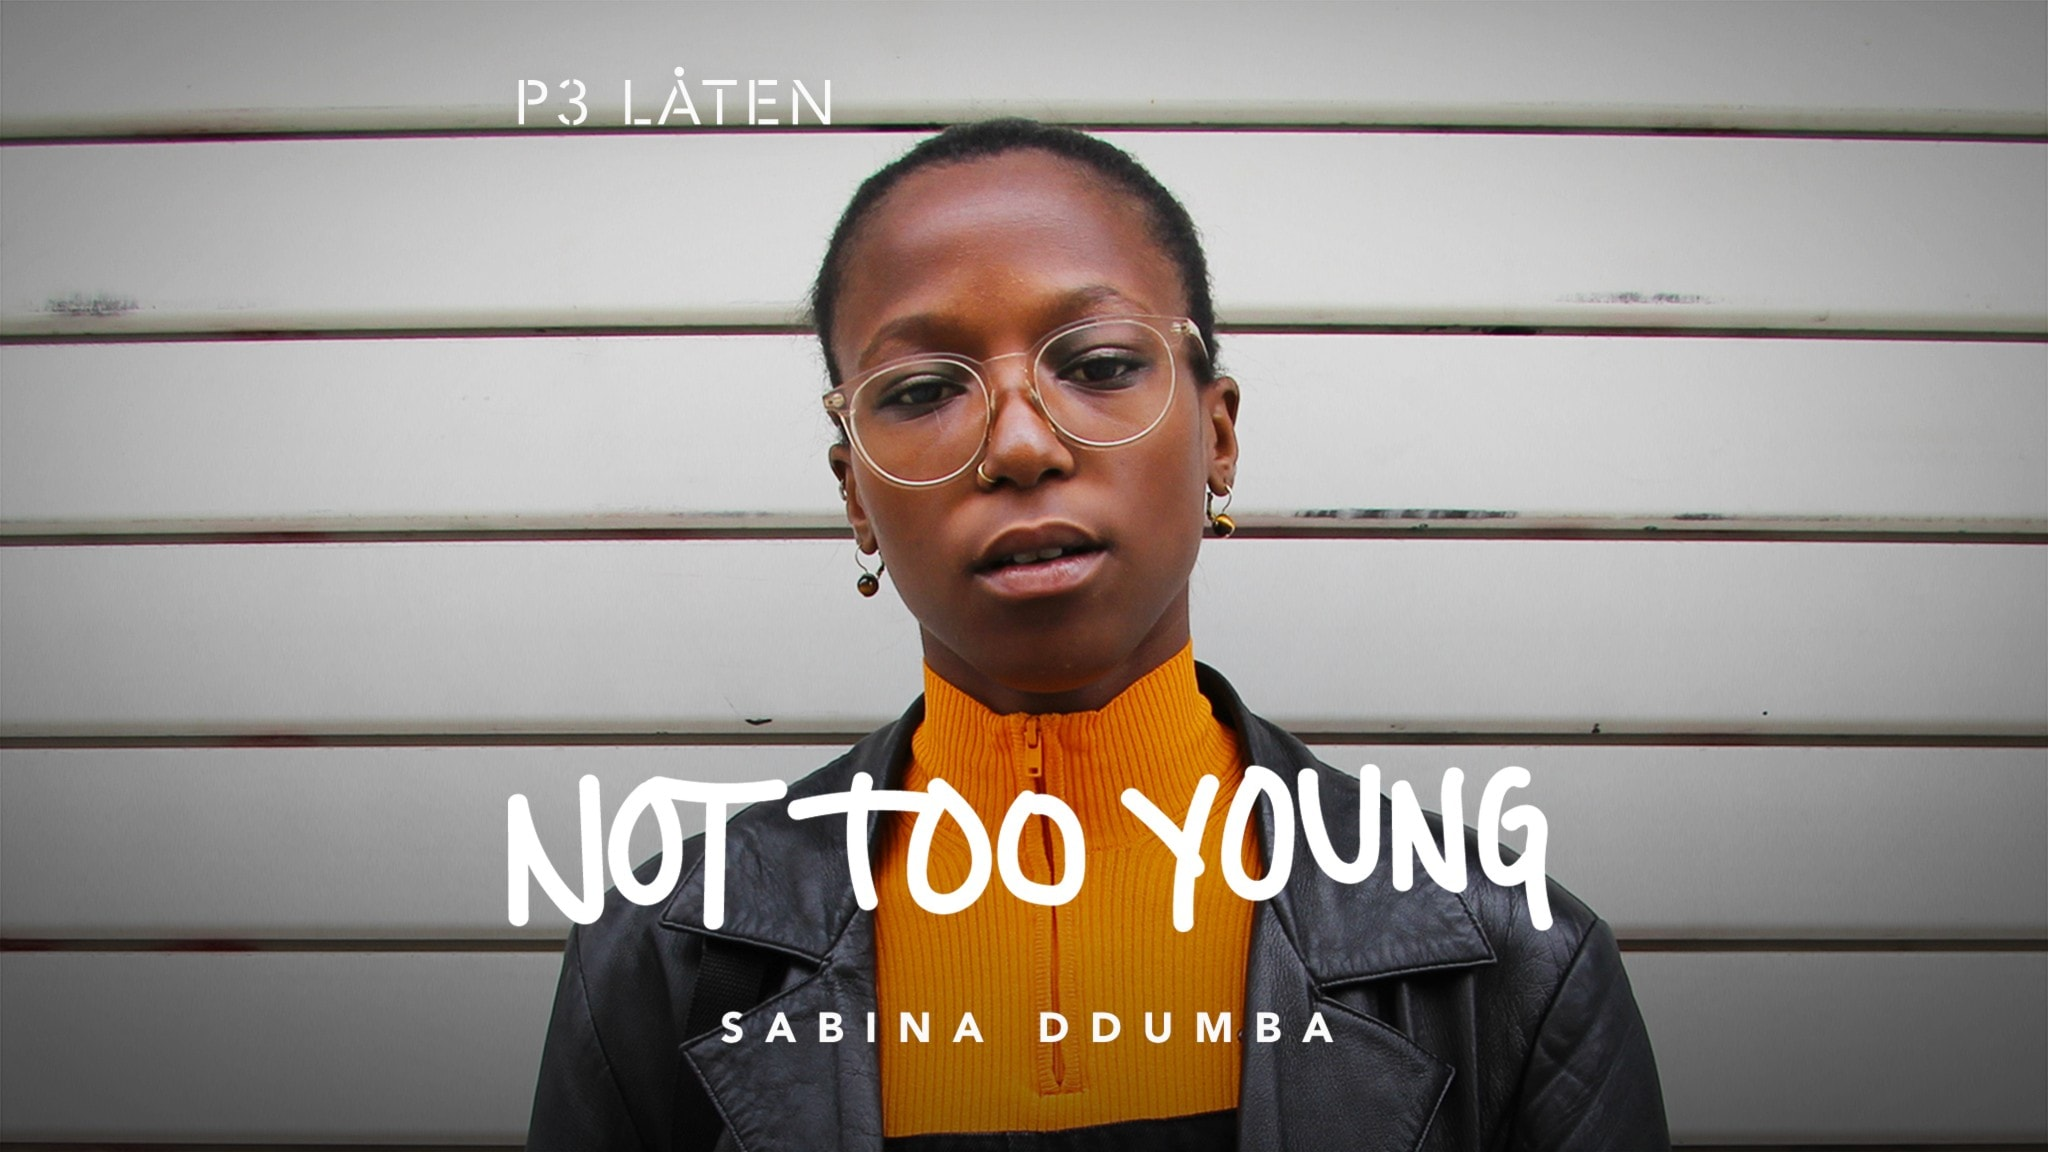 Sabina Ddumba - Not Too Young